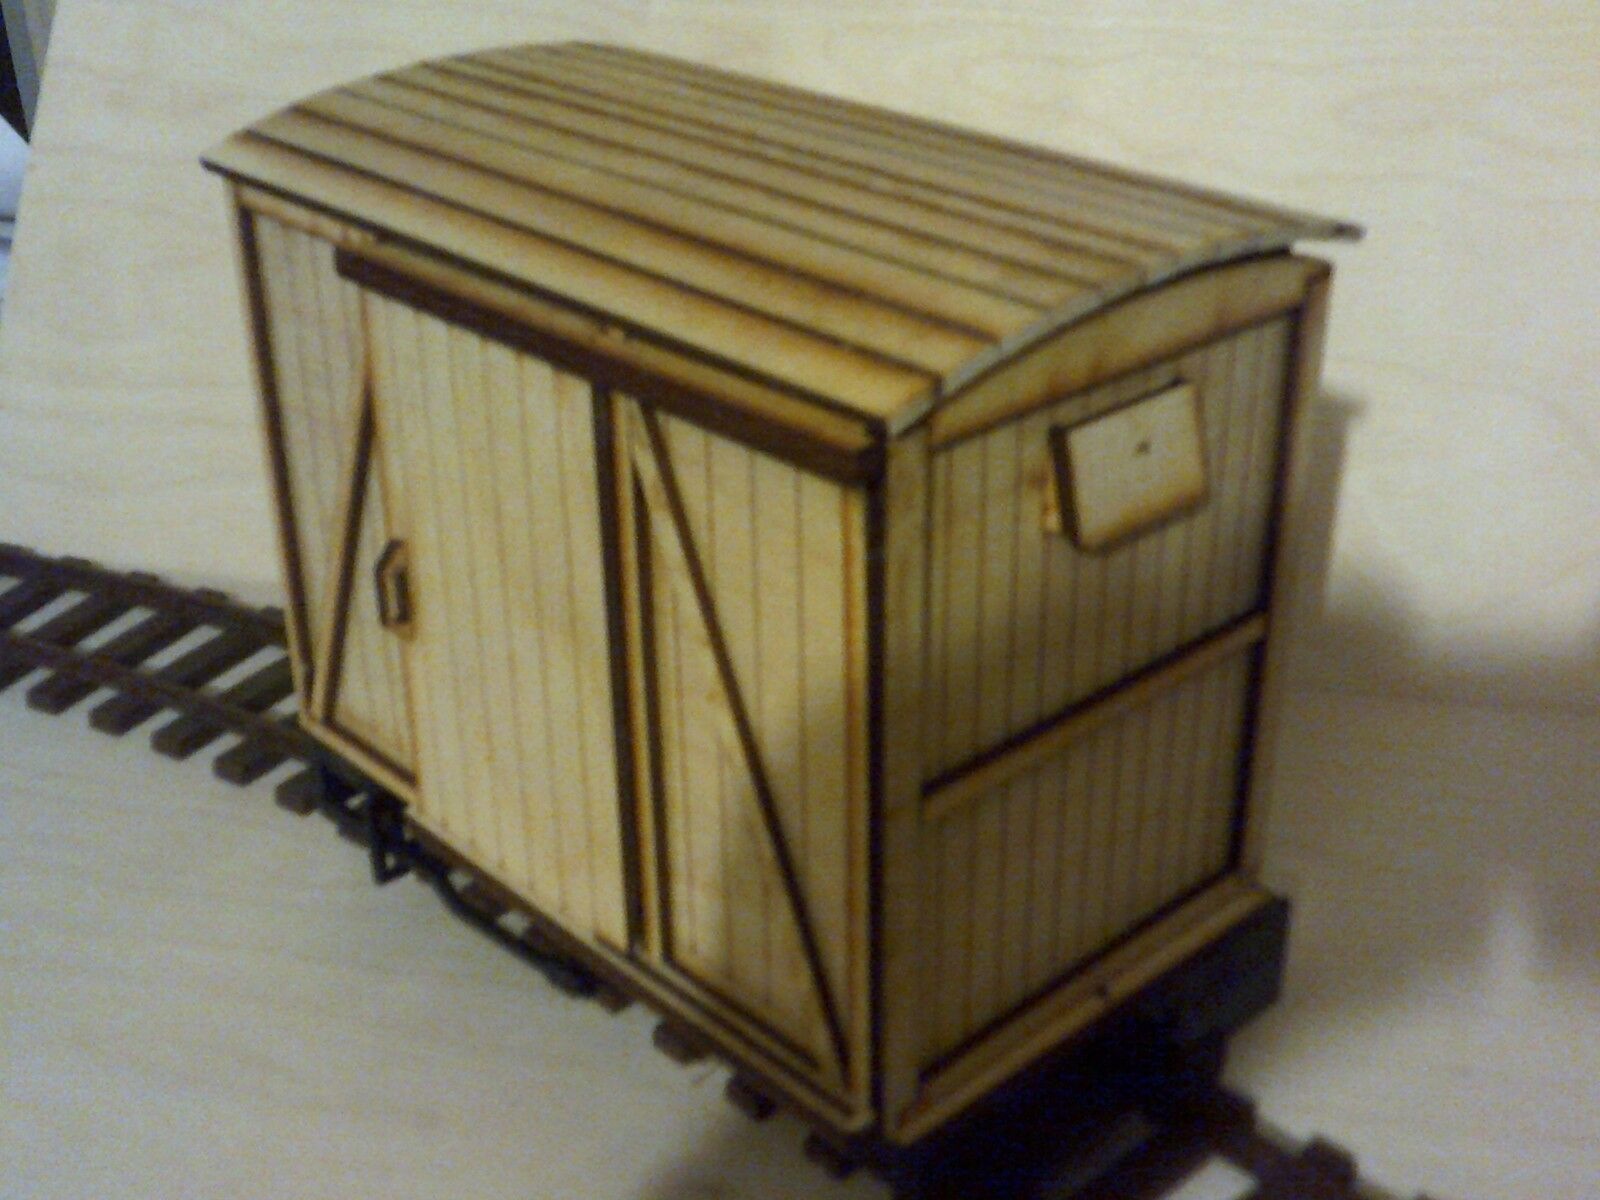 SEVEN EIGHTH SCALE BOX VAN